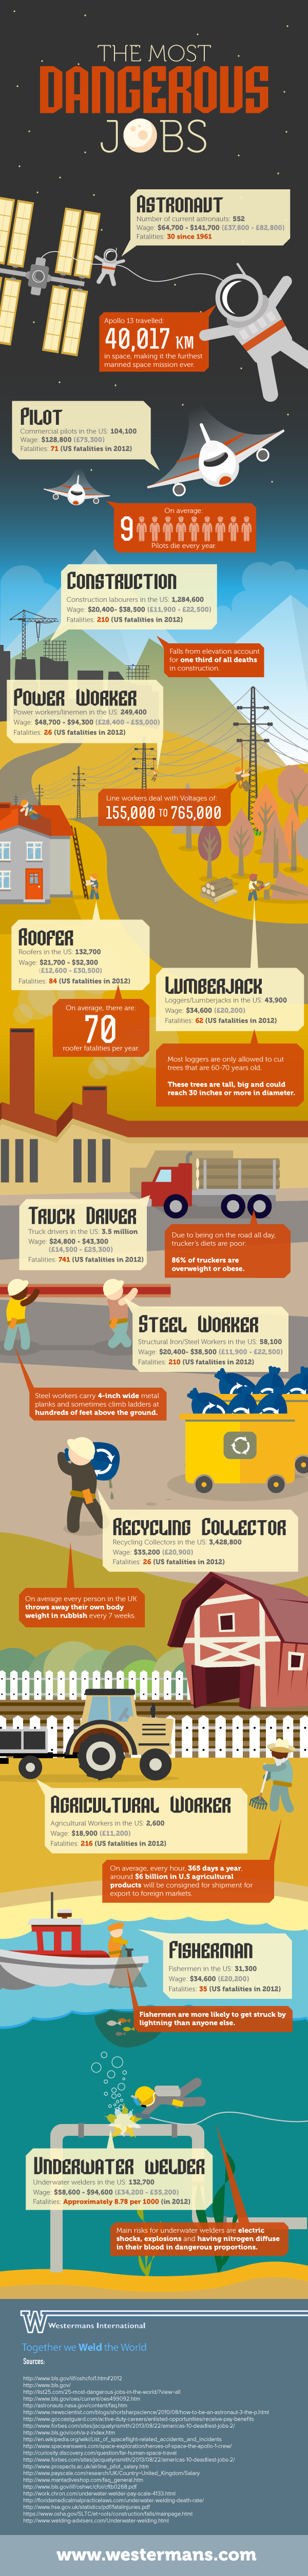 The Most Dangerous Job Infographic